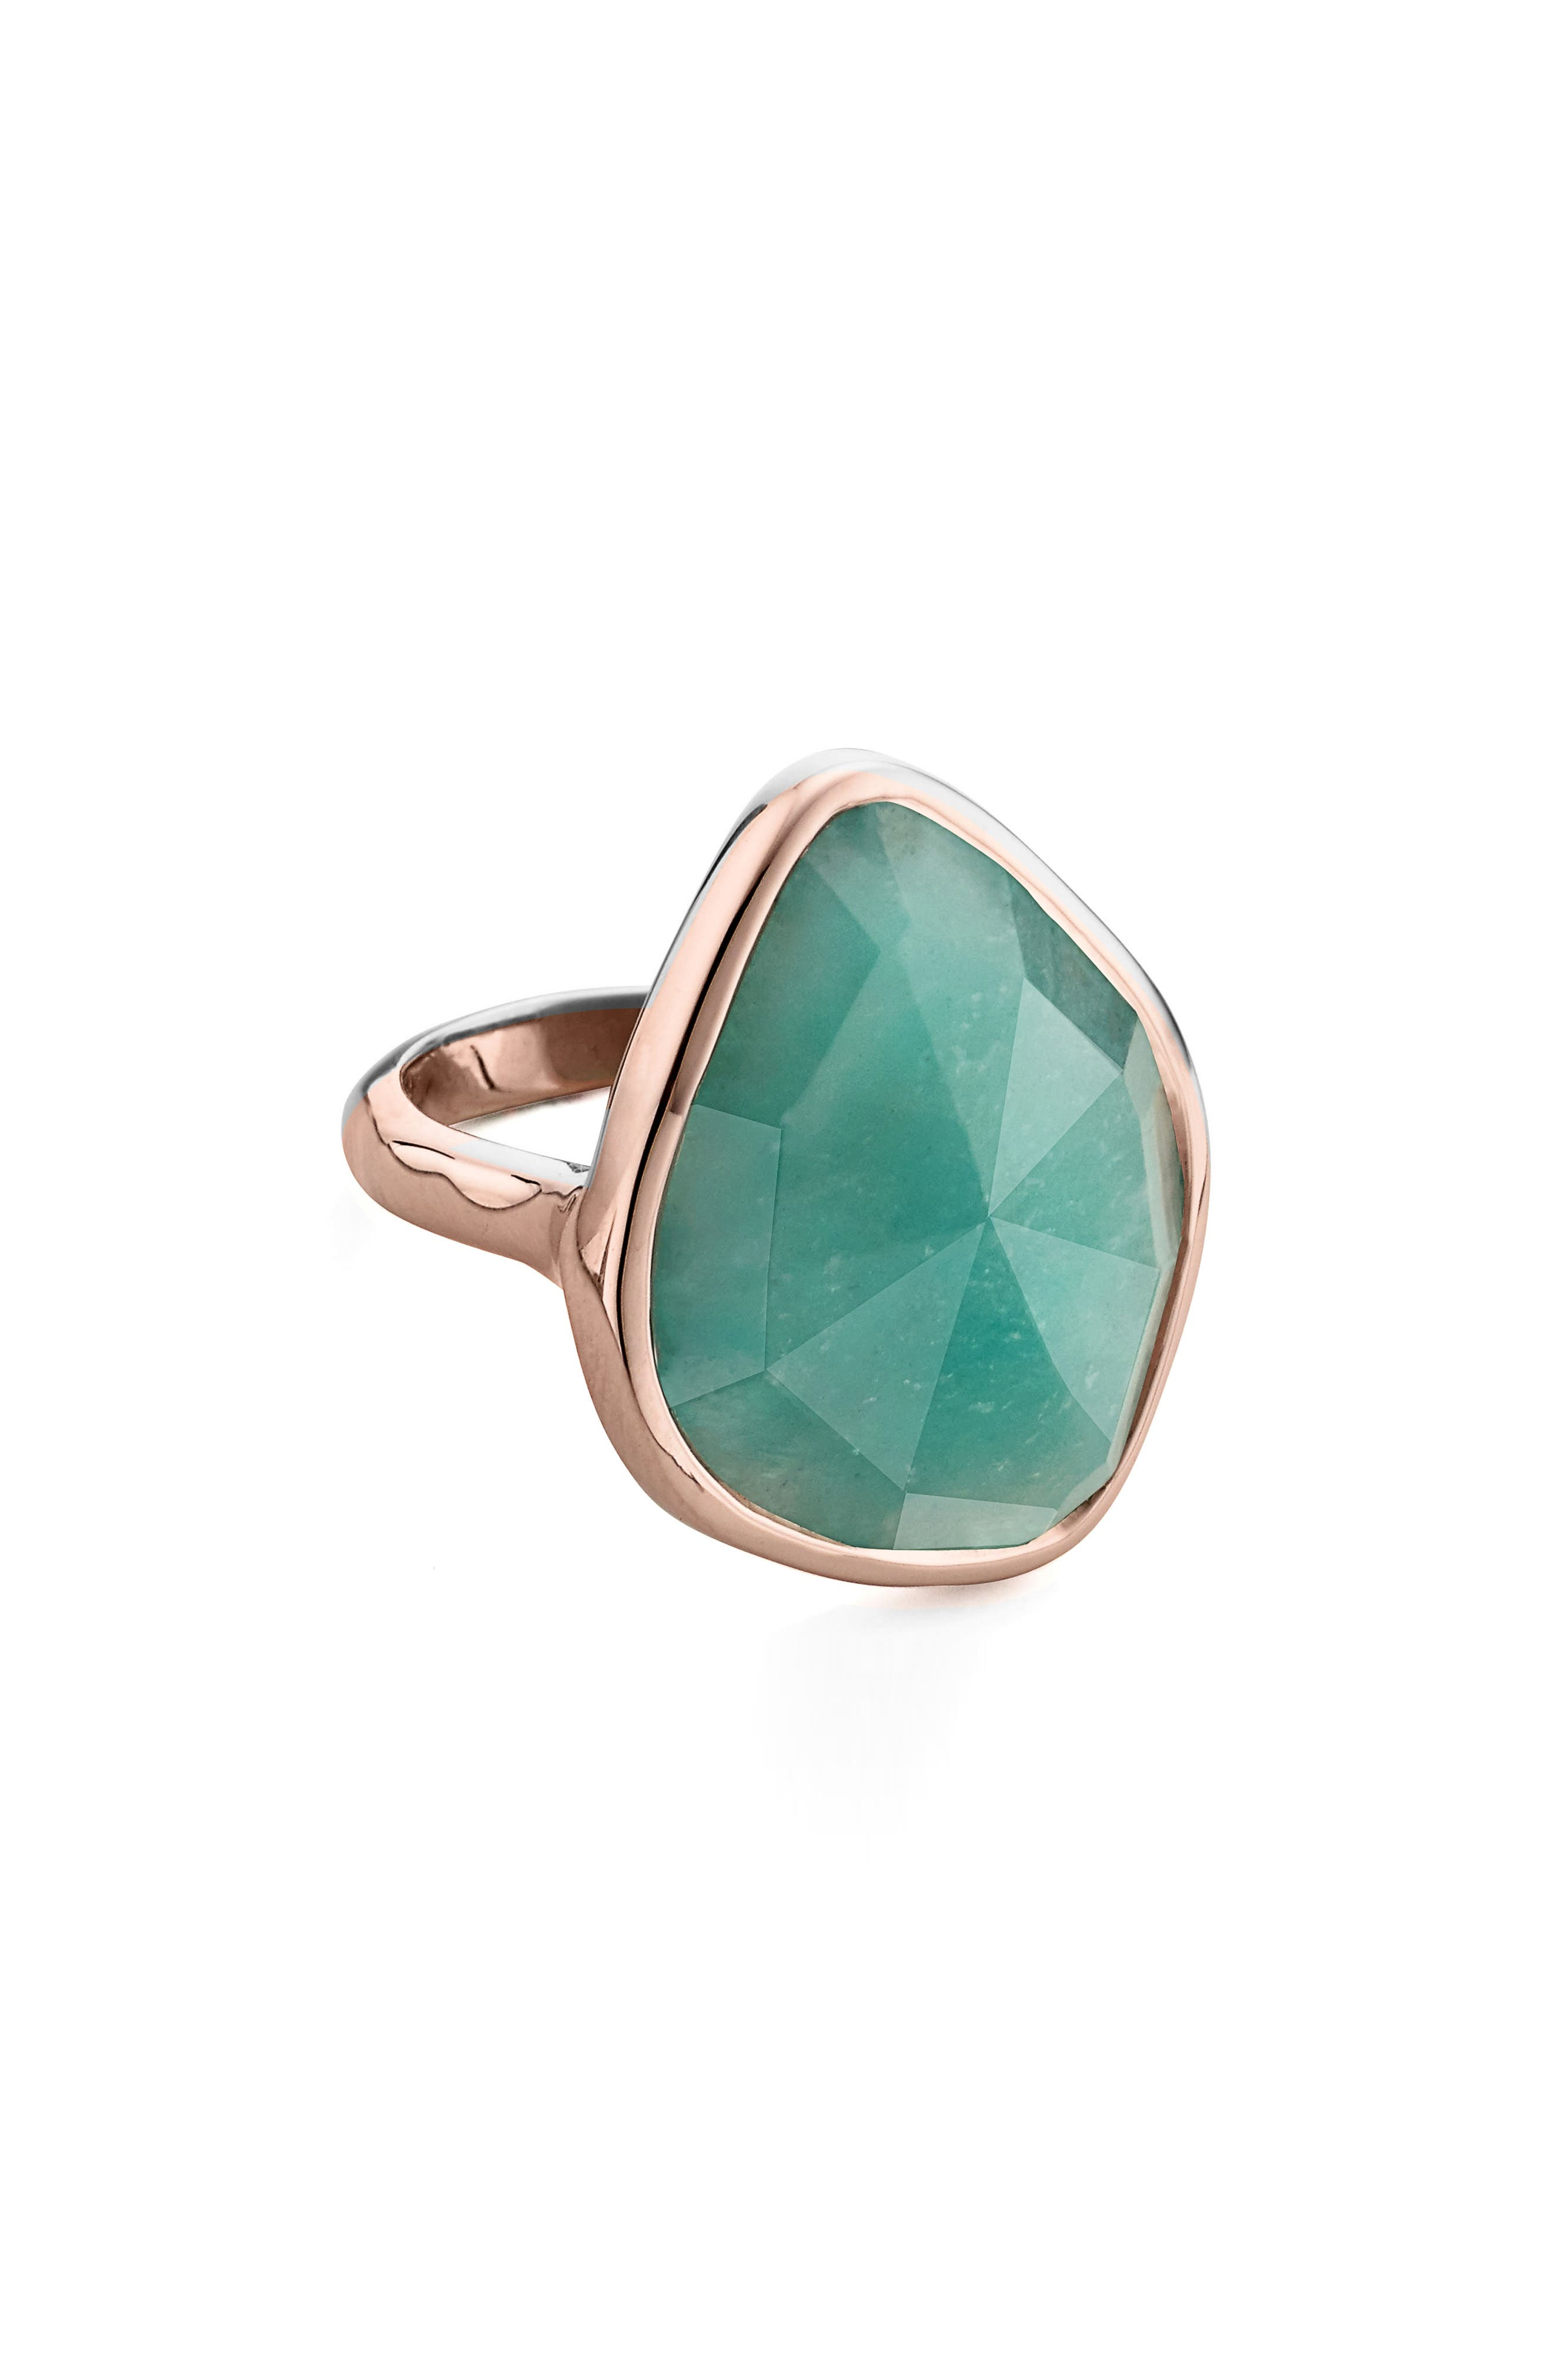 Siren Nugget Semiprecious Stone Cocktail Ring,                             Main thumbnail 1, color,                             ROSE GOLD/ AMAZONITE